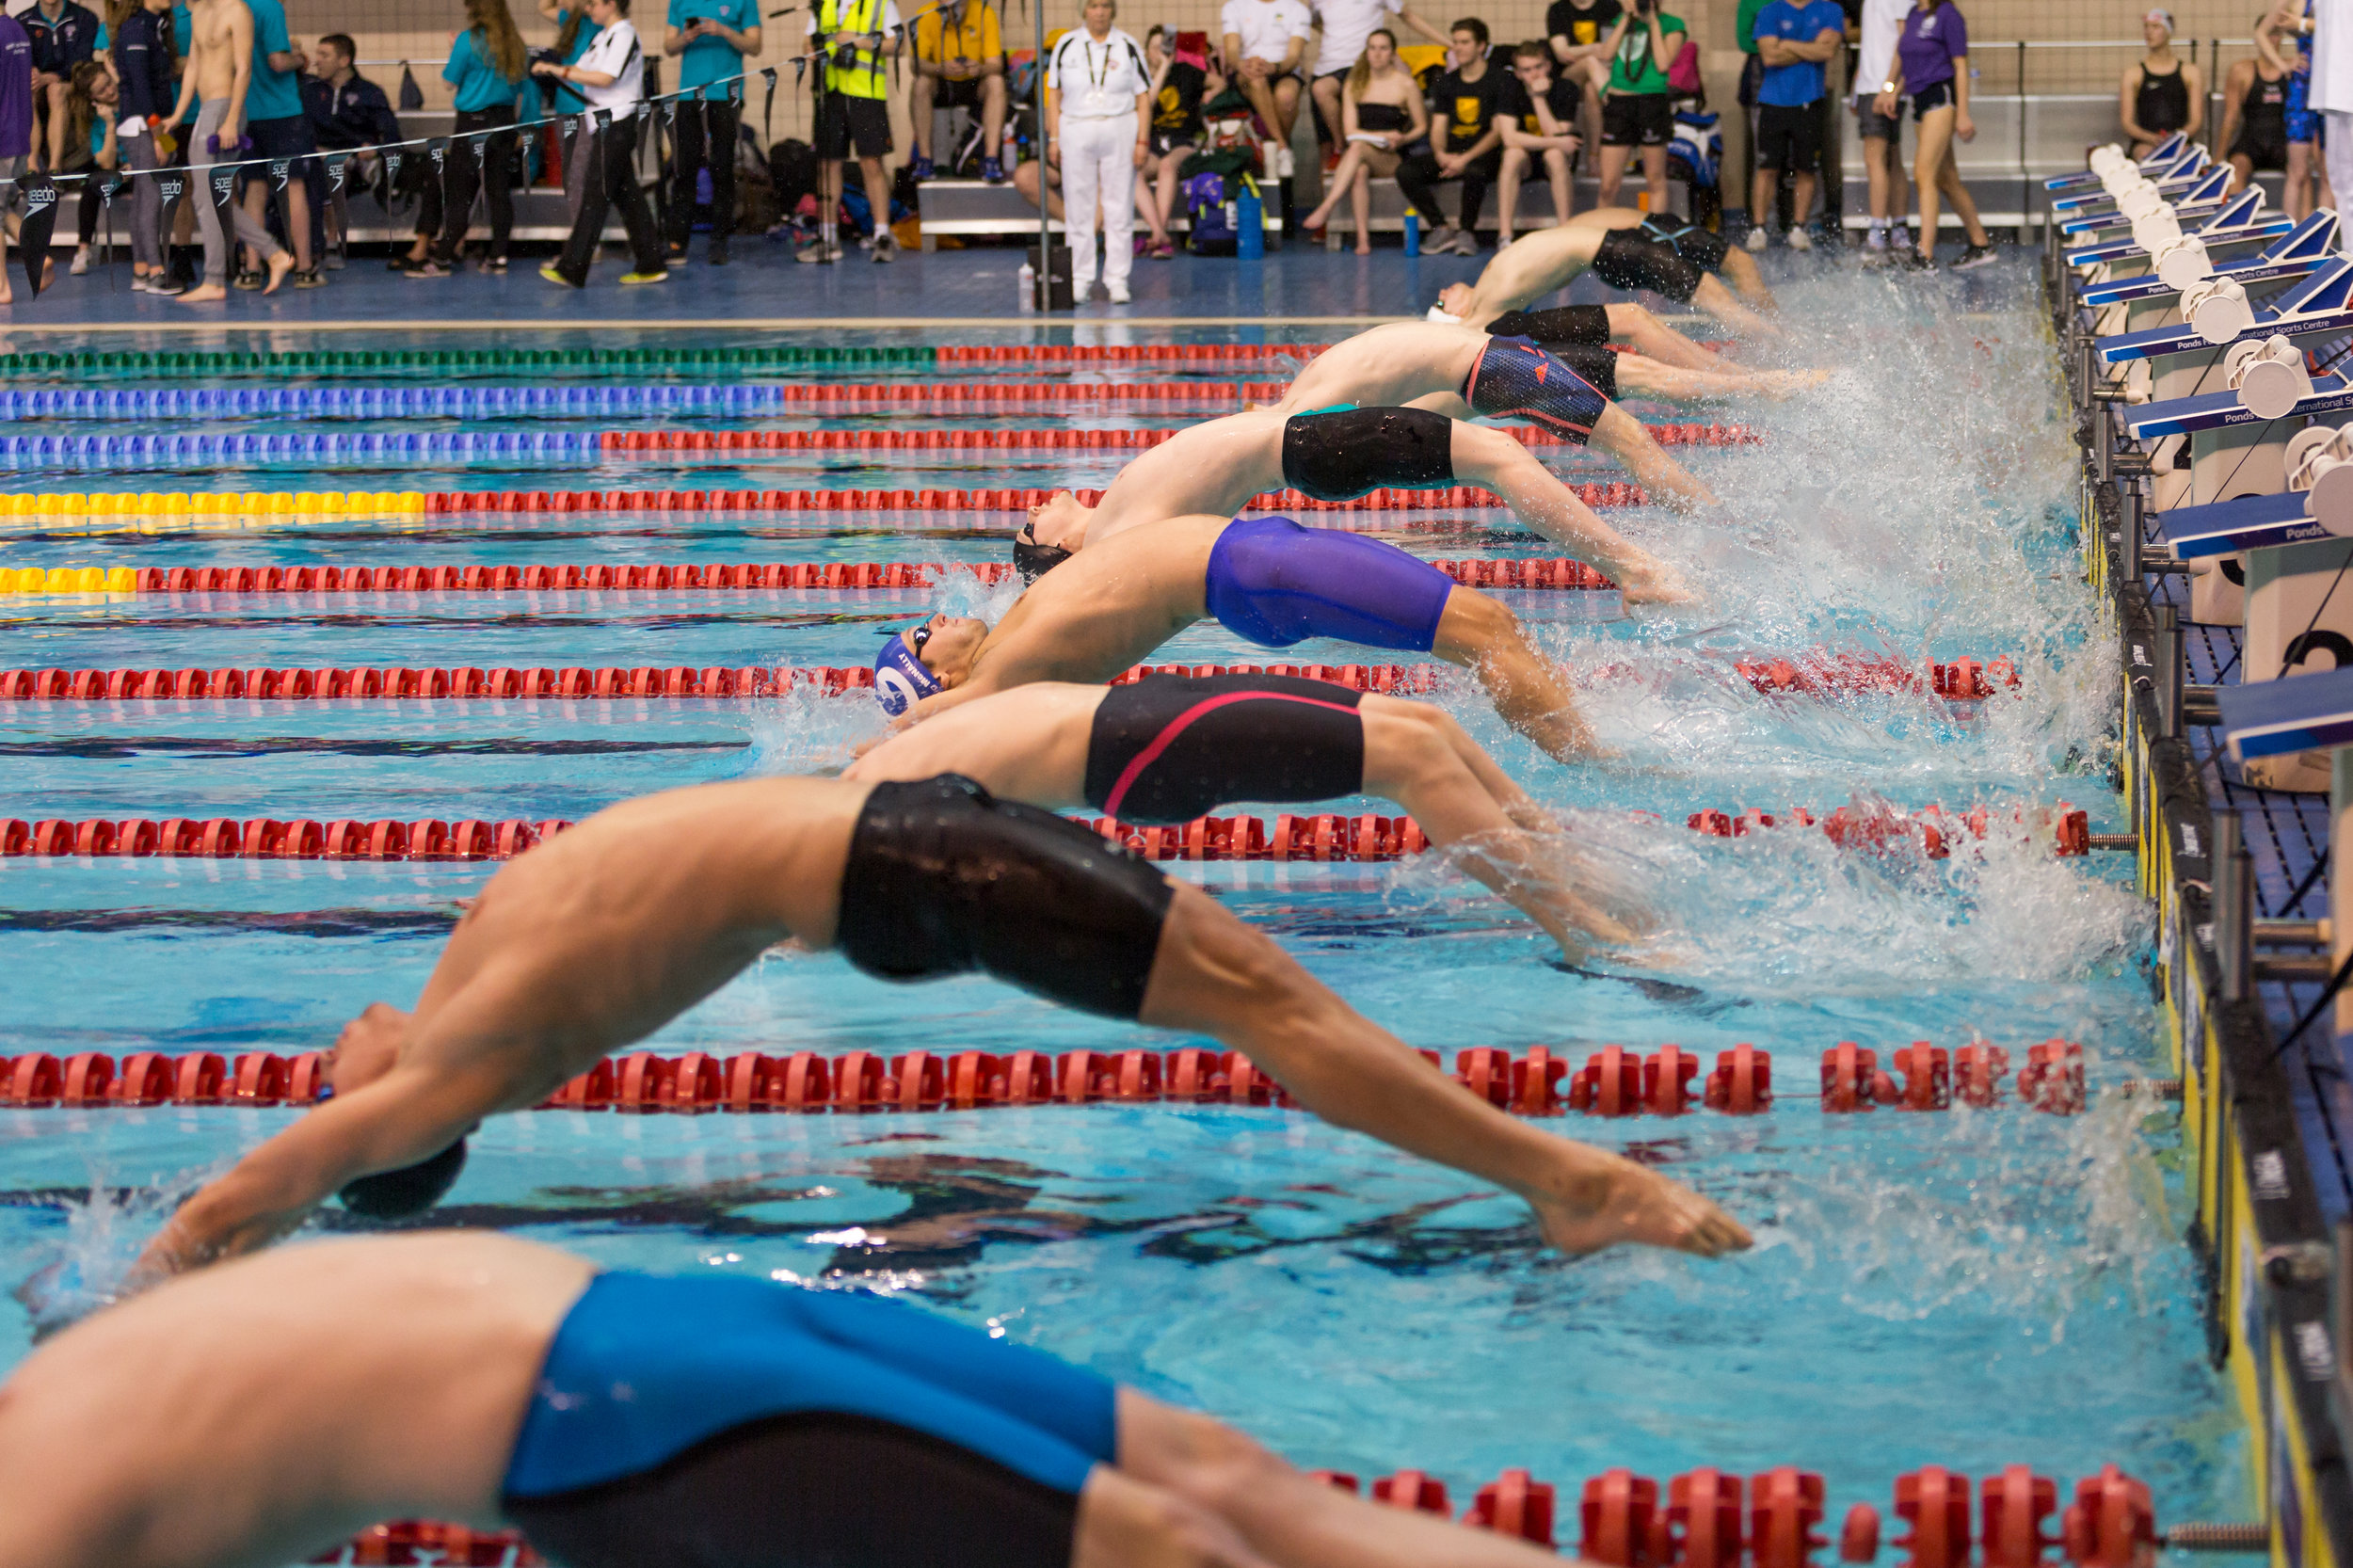 BUCS_Nationals_SwimmingFinalsSun_Action-2698.jpg